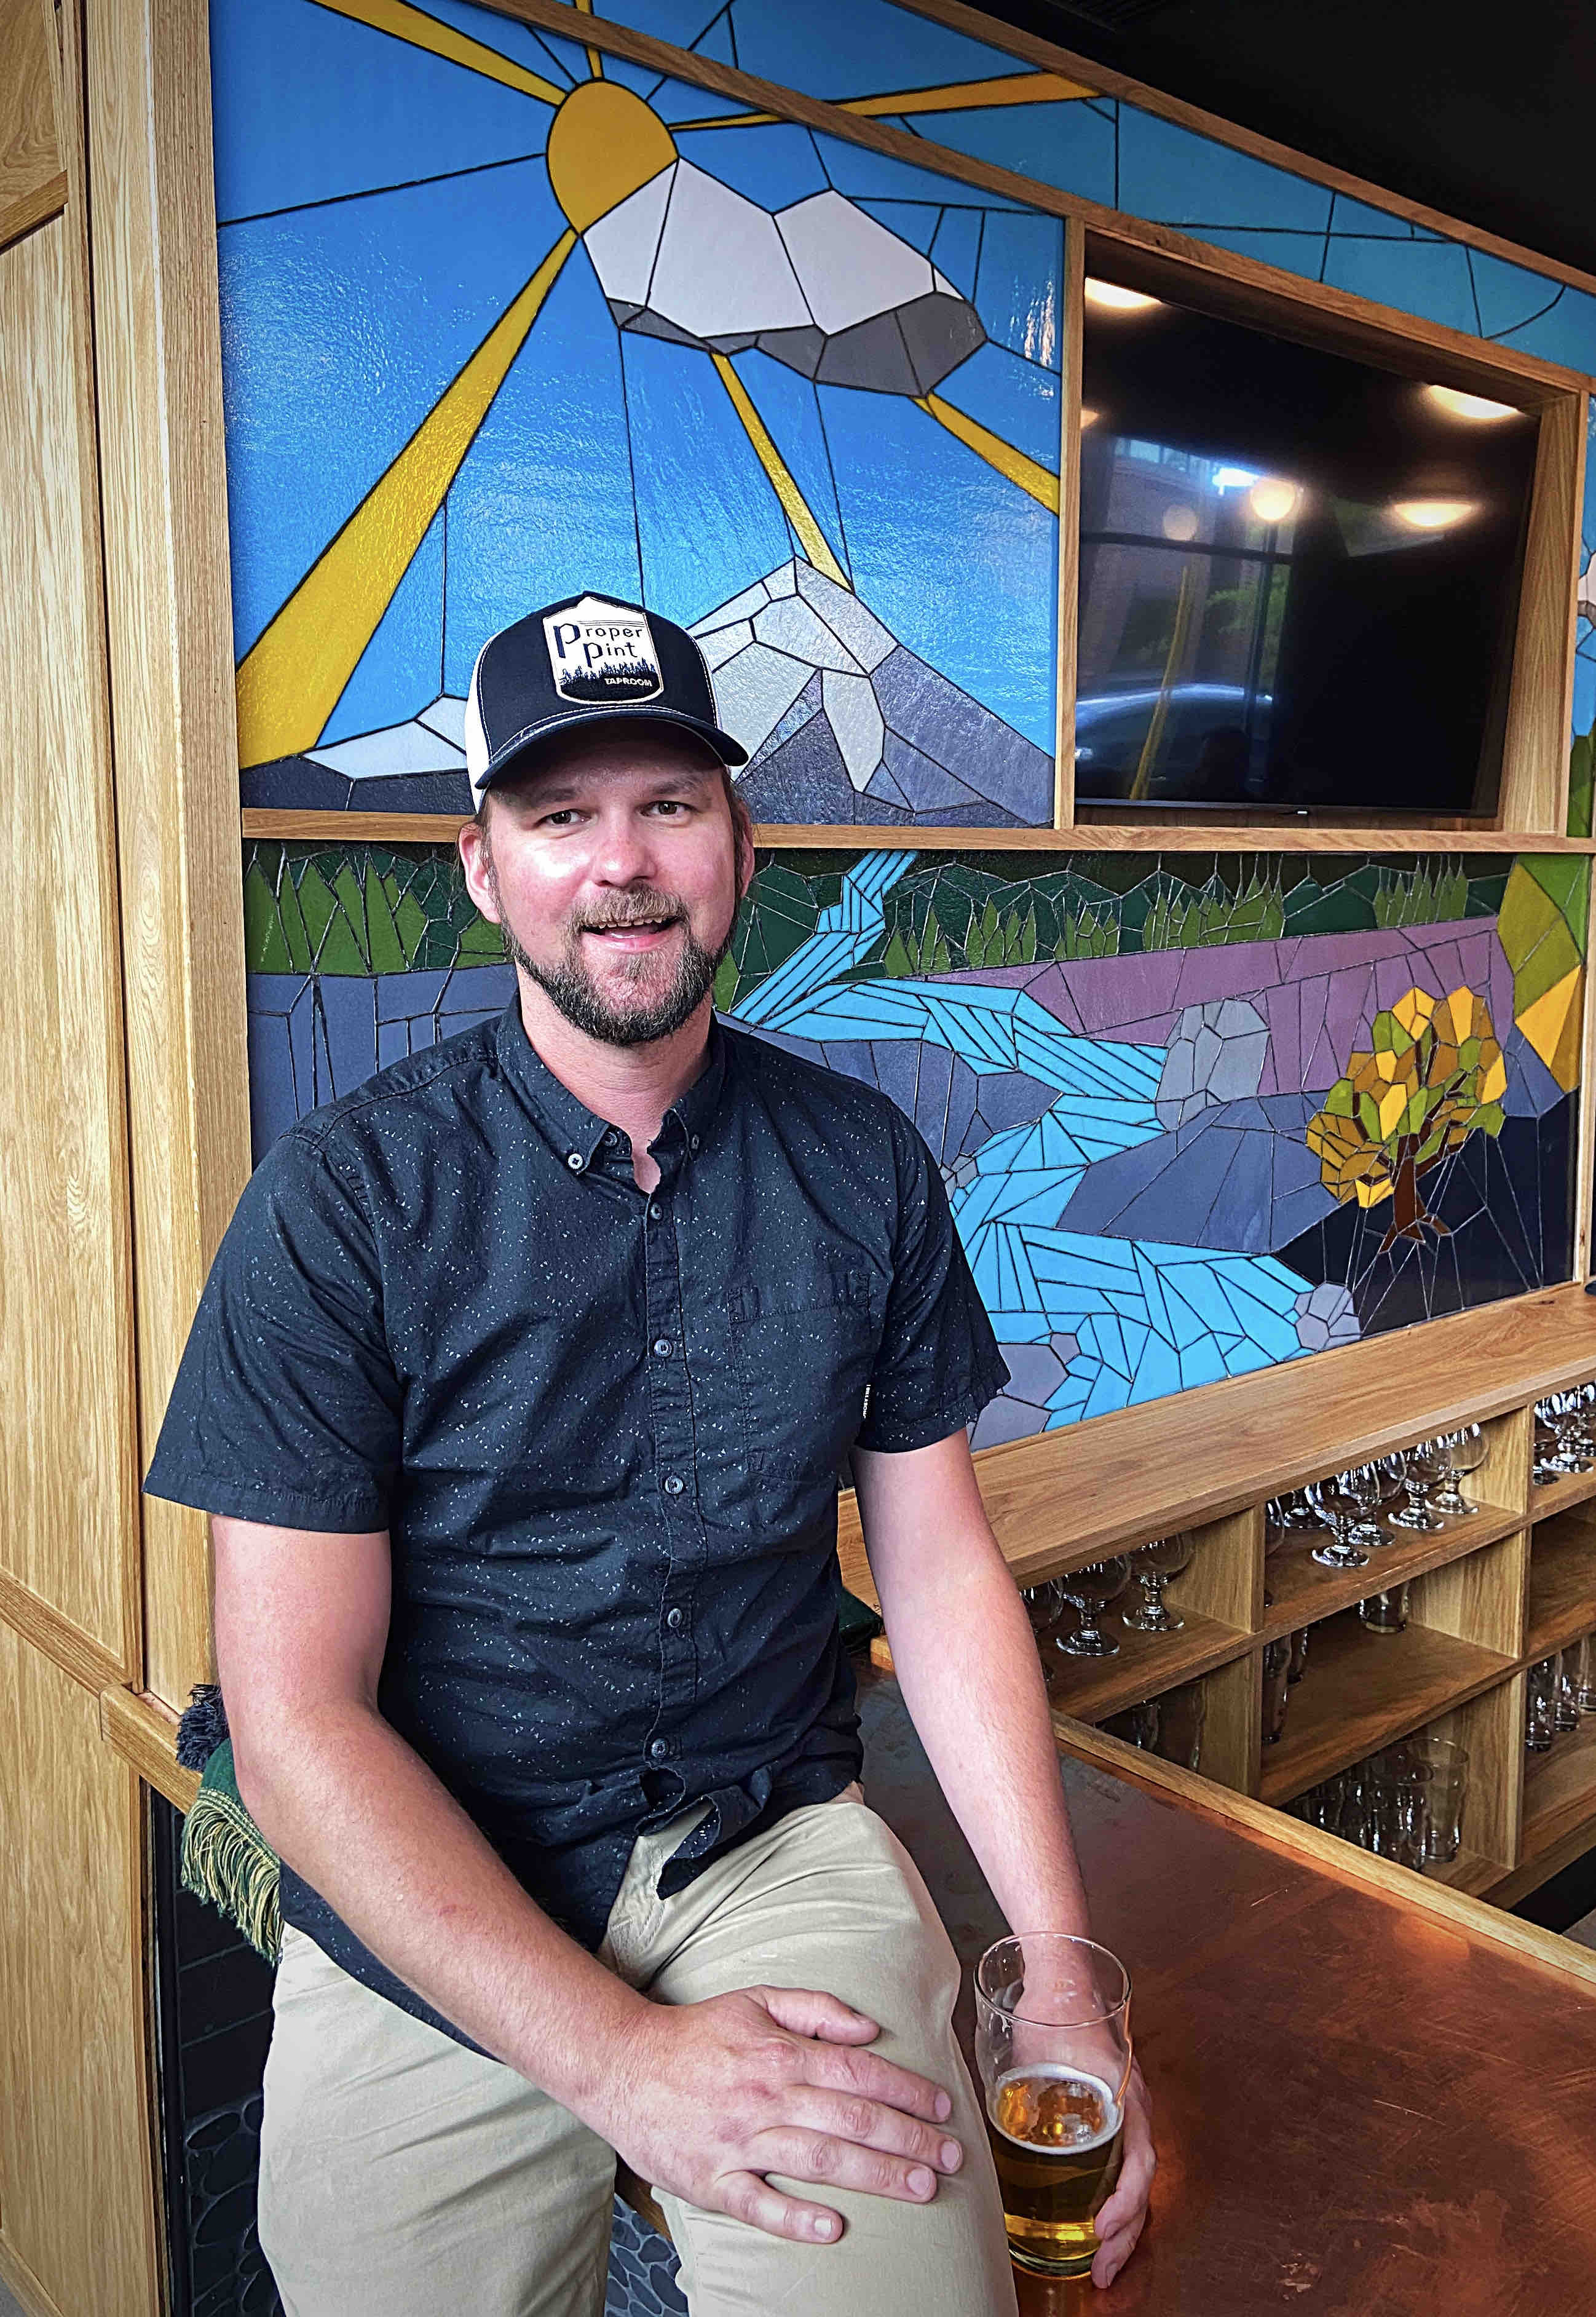 Sean Hiatt, owner of Proper Pint, is excited to bing beer drinkers a new location for craft beer and cider to Portland's Multnomah Village.